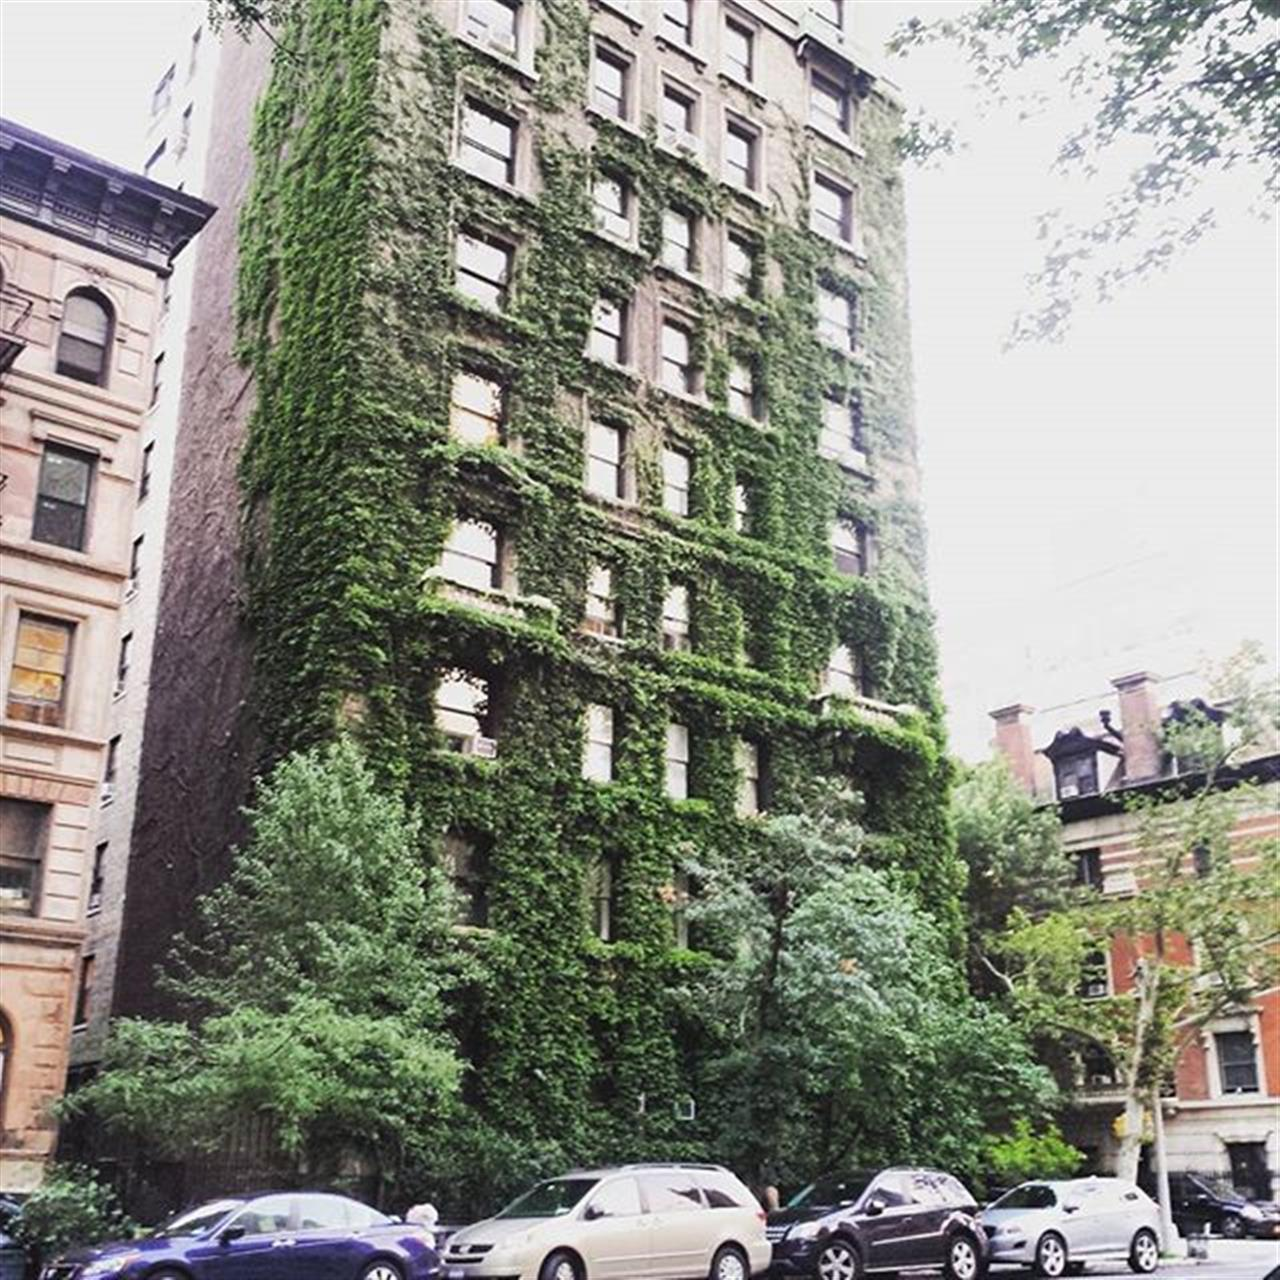 Ivy League... West end Ave and 91st street #ivy #ivyleague #classic #uws #prewar #leadingrelocal